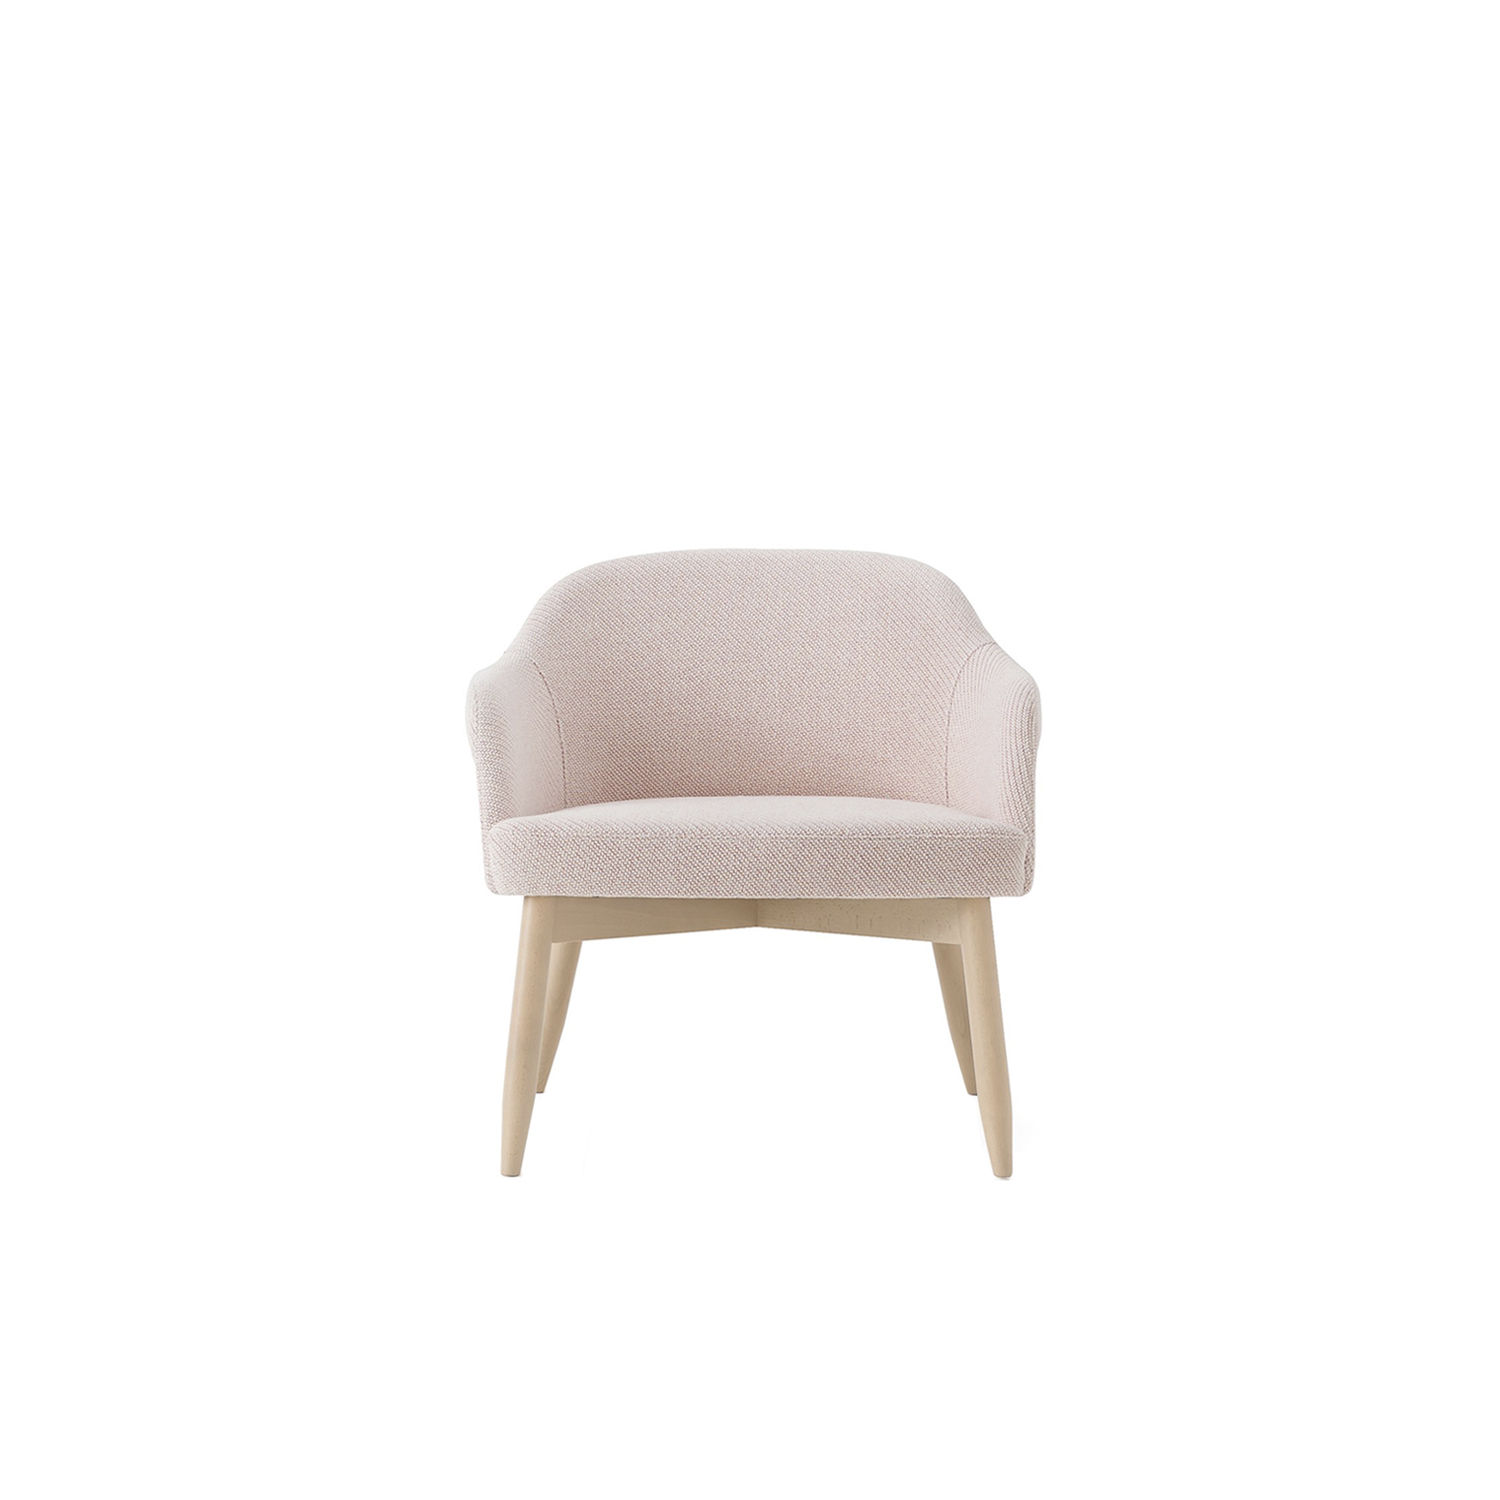 Spy Lounge Armchair - Lounge chair and Spy High in solid beech or lacquered steel, Spy Wingback in solid beech, all three models with upholstered plywood shells. Chair comes with standard felt floor pads.  | Matter of Stuff